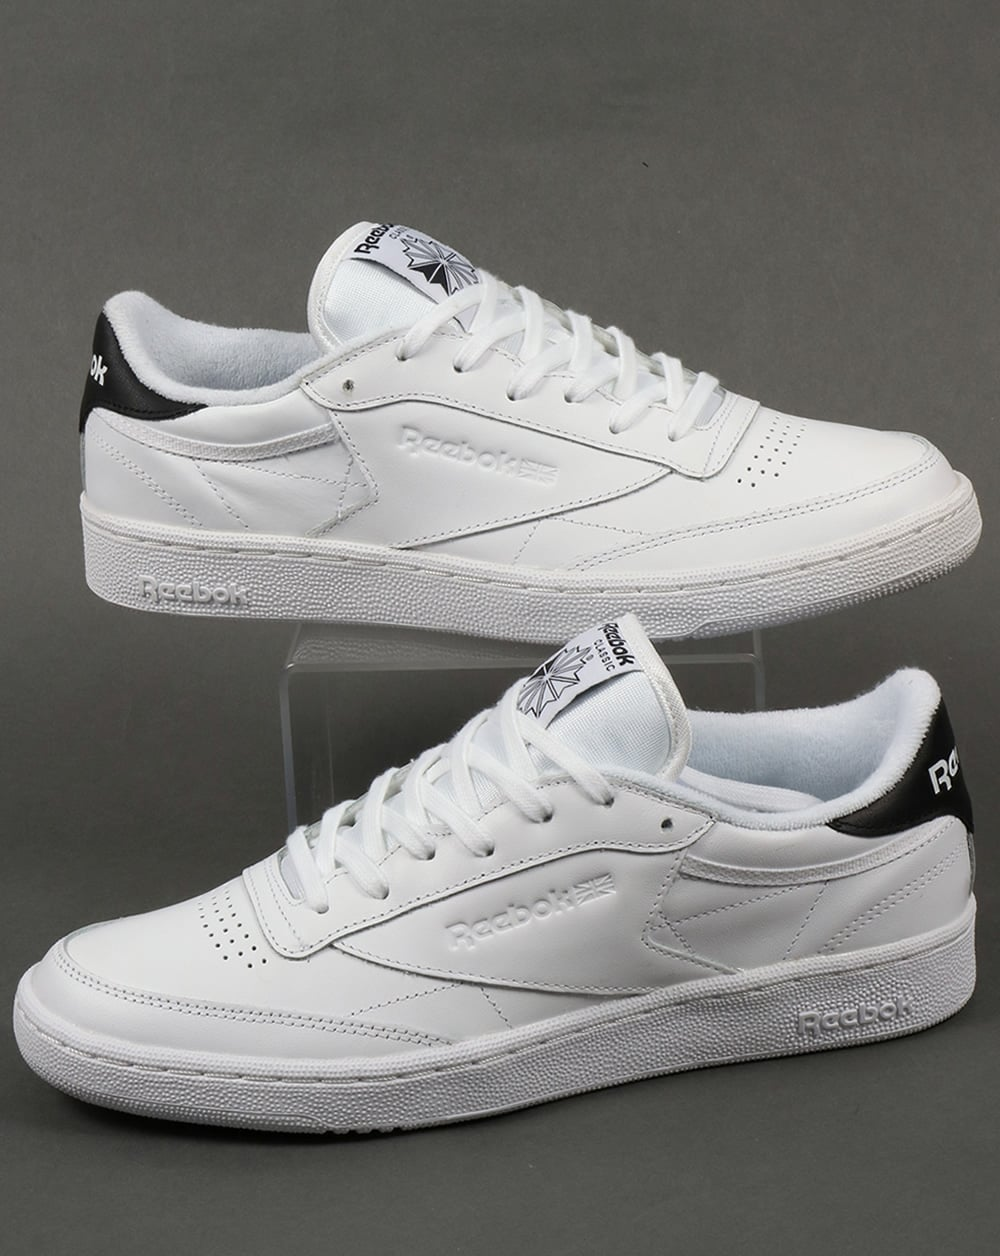 e28ea3c2543 Reebok Reebok Club C 85 Retro Trainers White Black